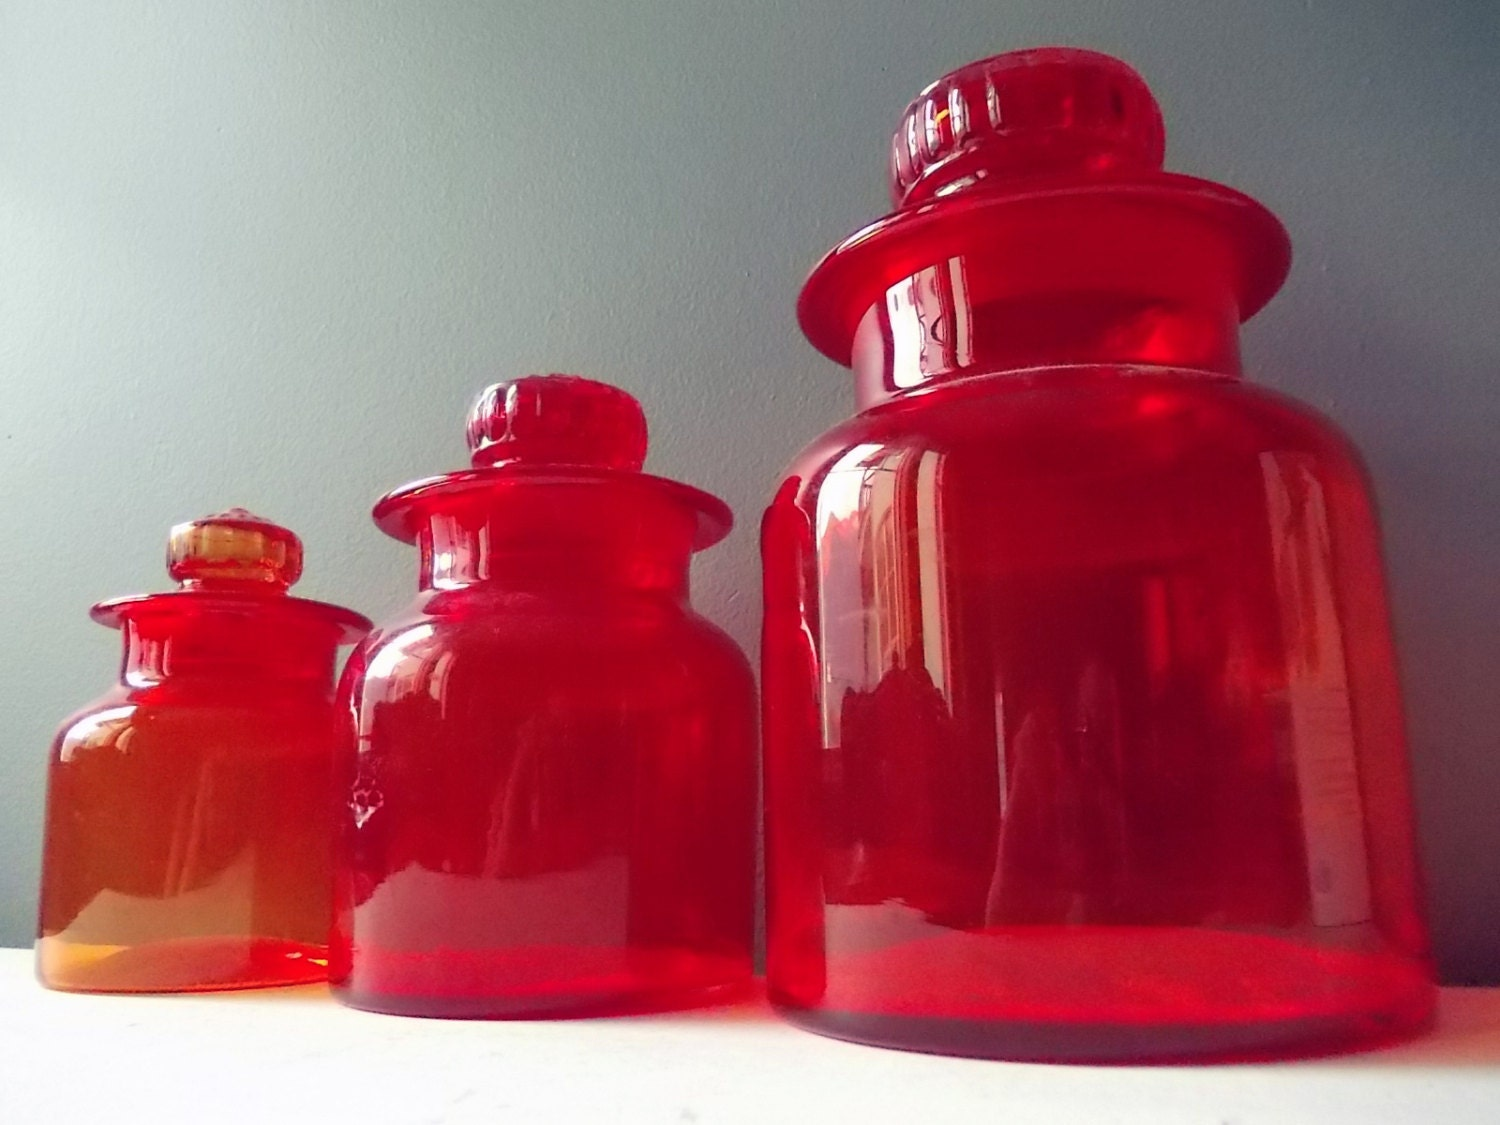 Decorative Kitchen Canisters Red Glass Kitchen Canisters Vintage Glass Jars With Lids